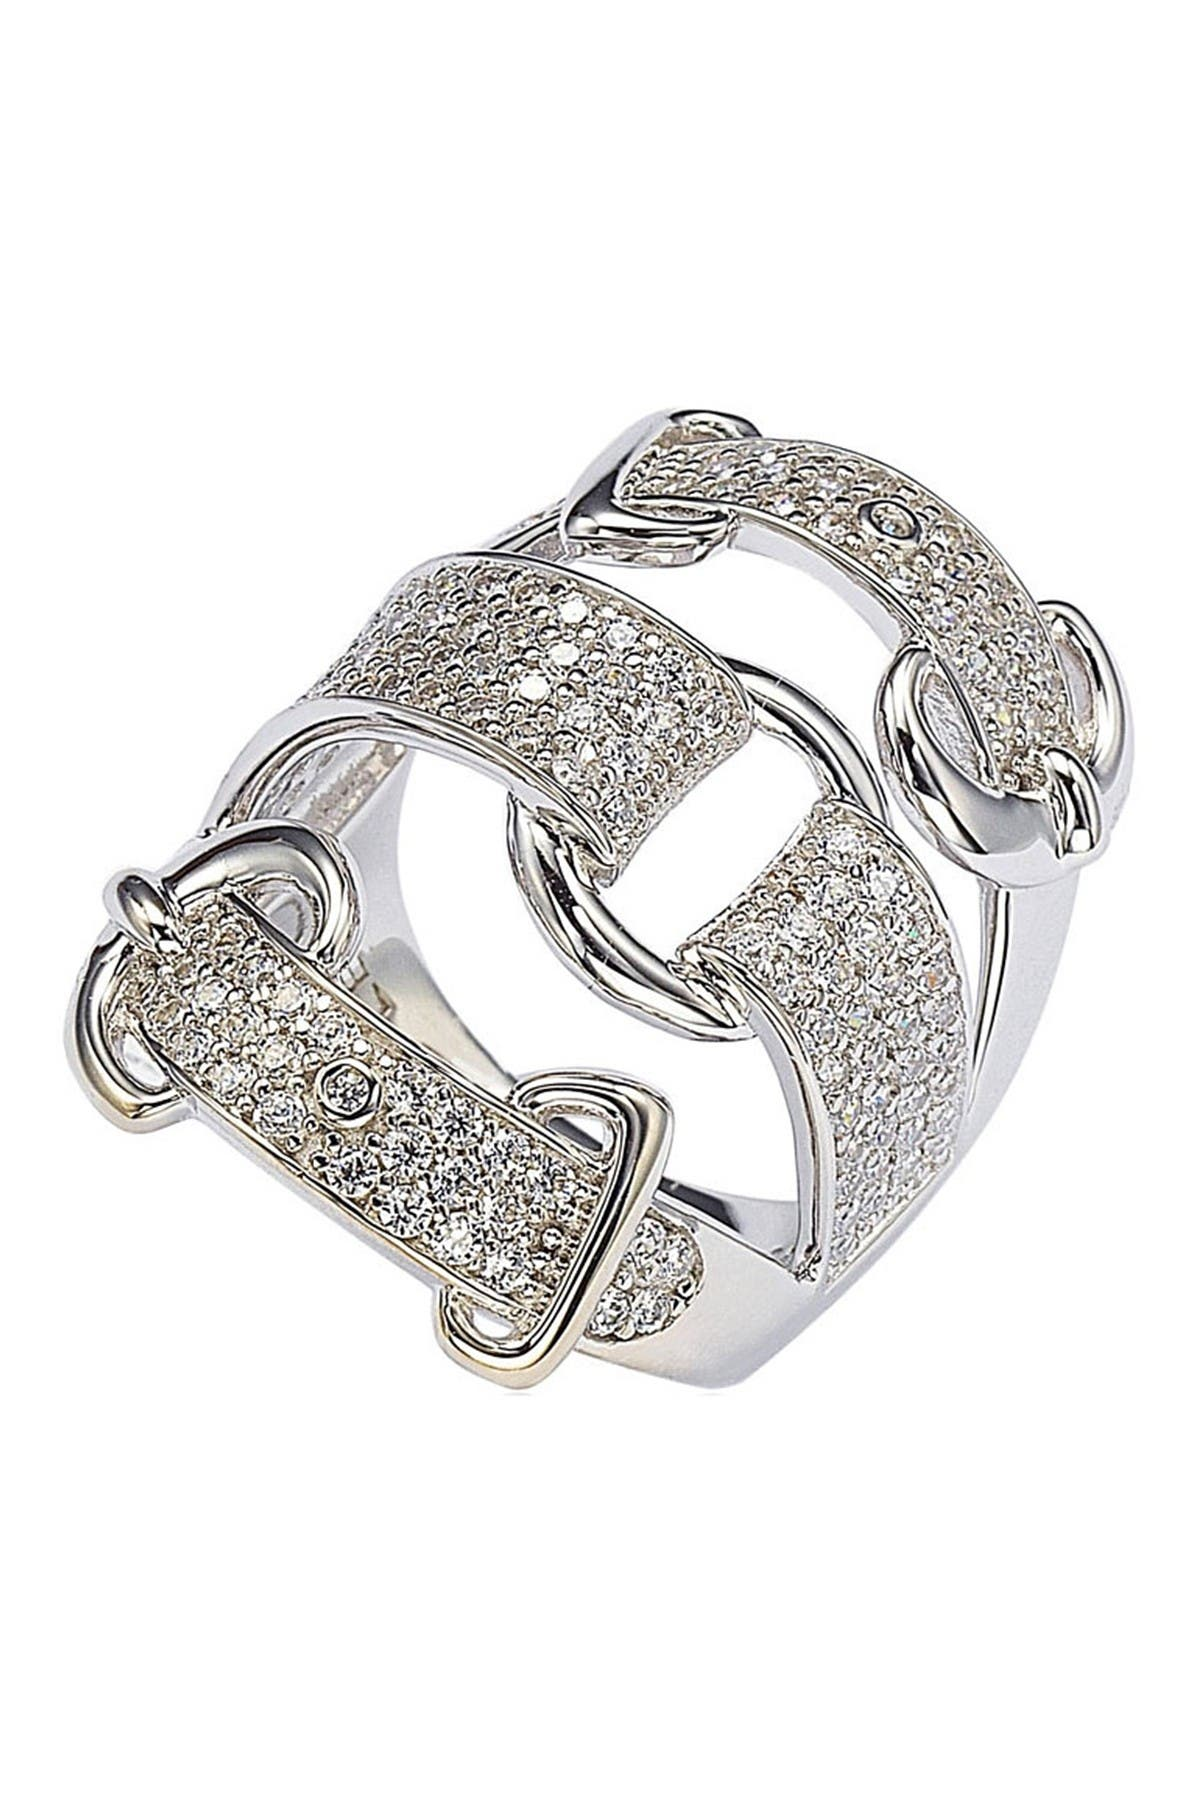 Image of Suzy Levian Sterling Silver CZ Triple Buckle Ring